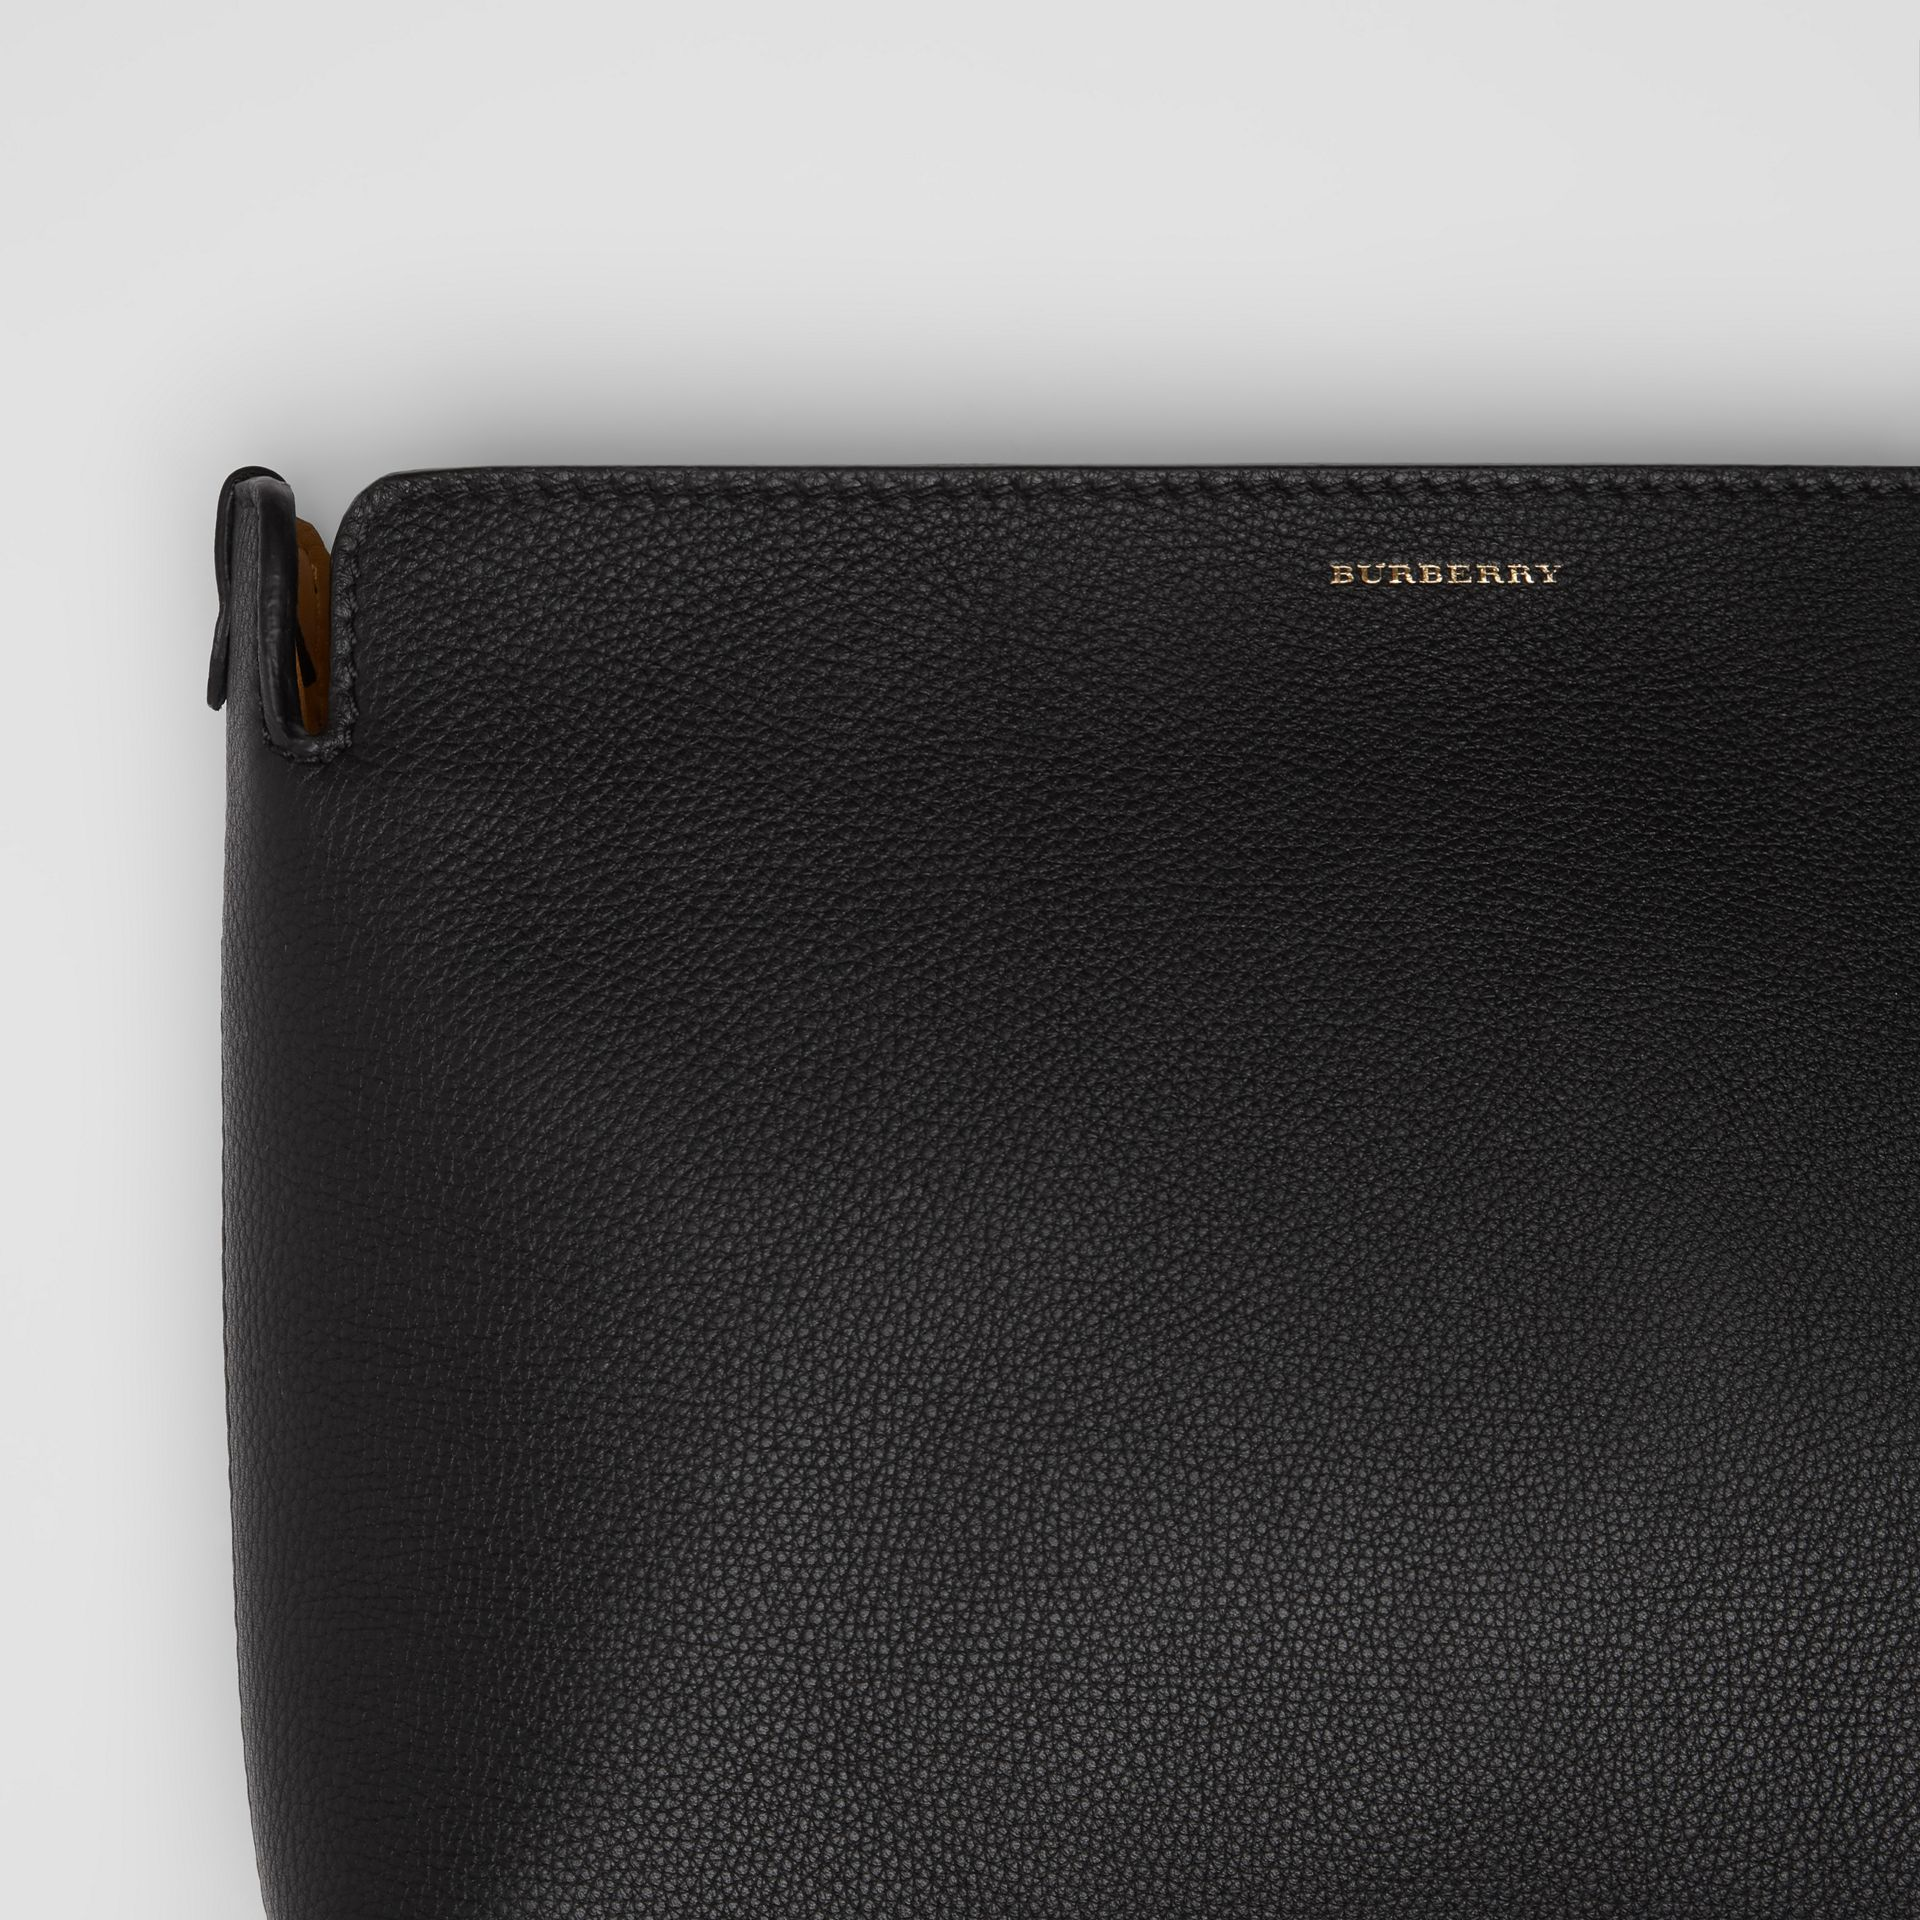 Medium Tri-tone Leather Clutch in Black/sea Green | Burberry - gallery image 1